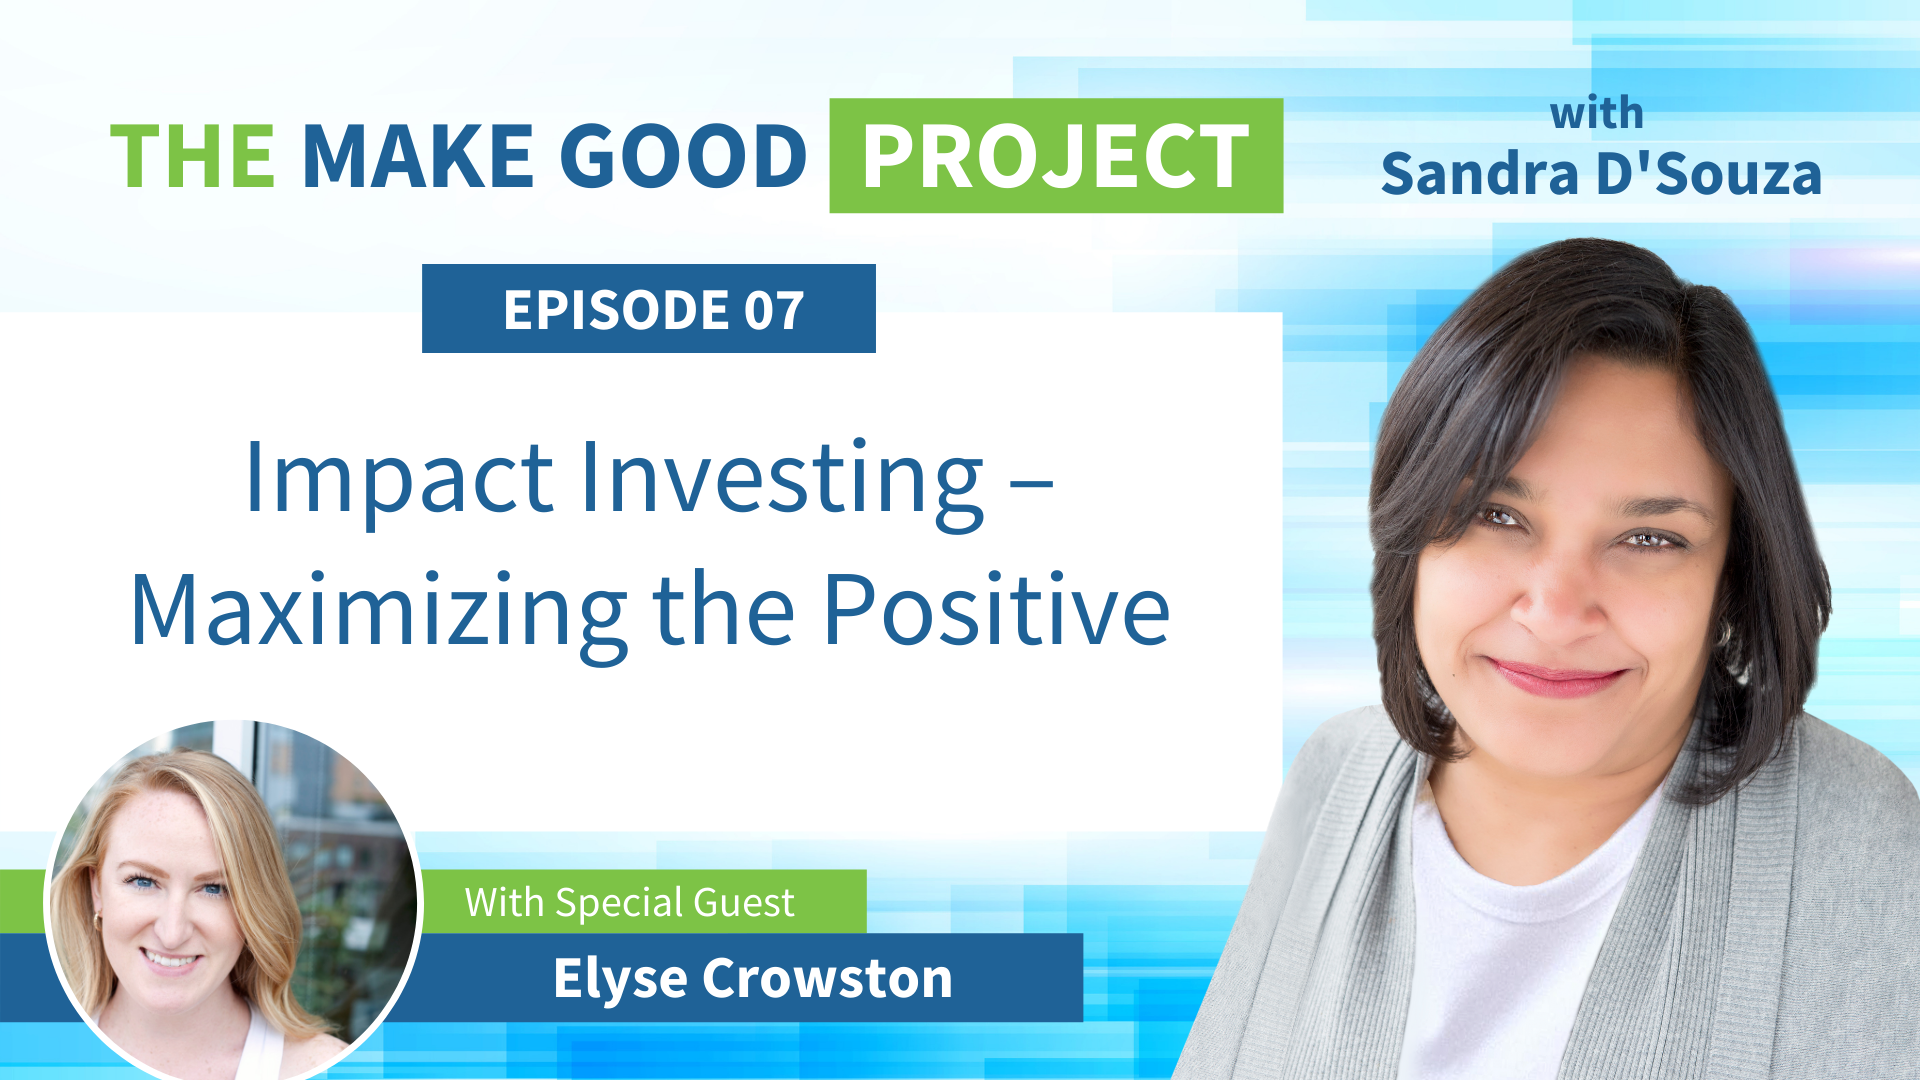 EP #07: Impact Investing – Maximizing the Positive with Elyse Crowston